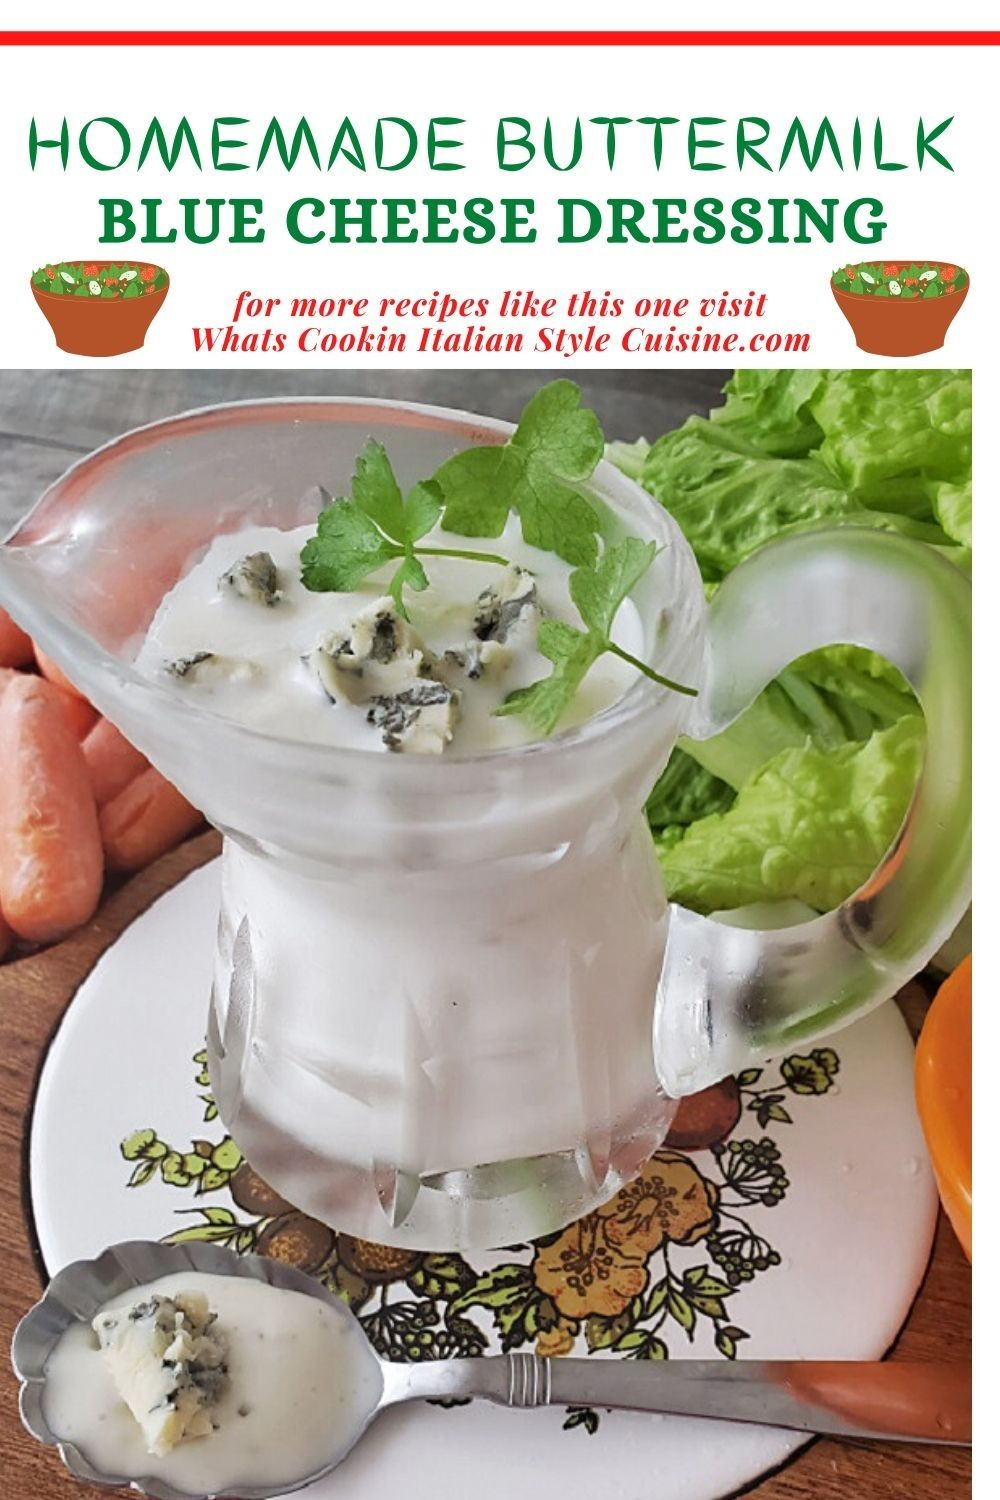 Homemade Buttermilk Blue Cheese Dressing Recipe In 2020 Condiment Recipes Homemade Buttermilk Buttermilk Blue Cheese Dressing